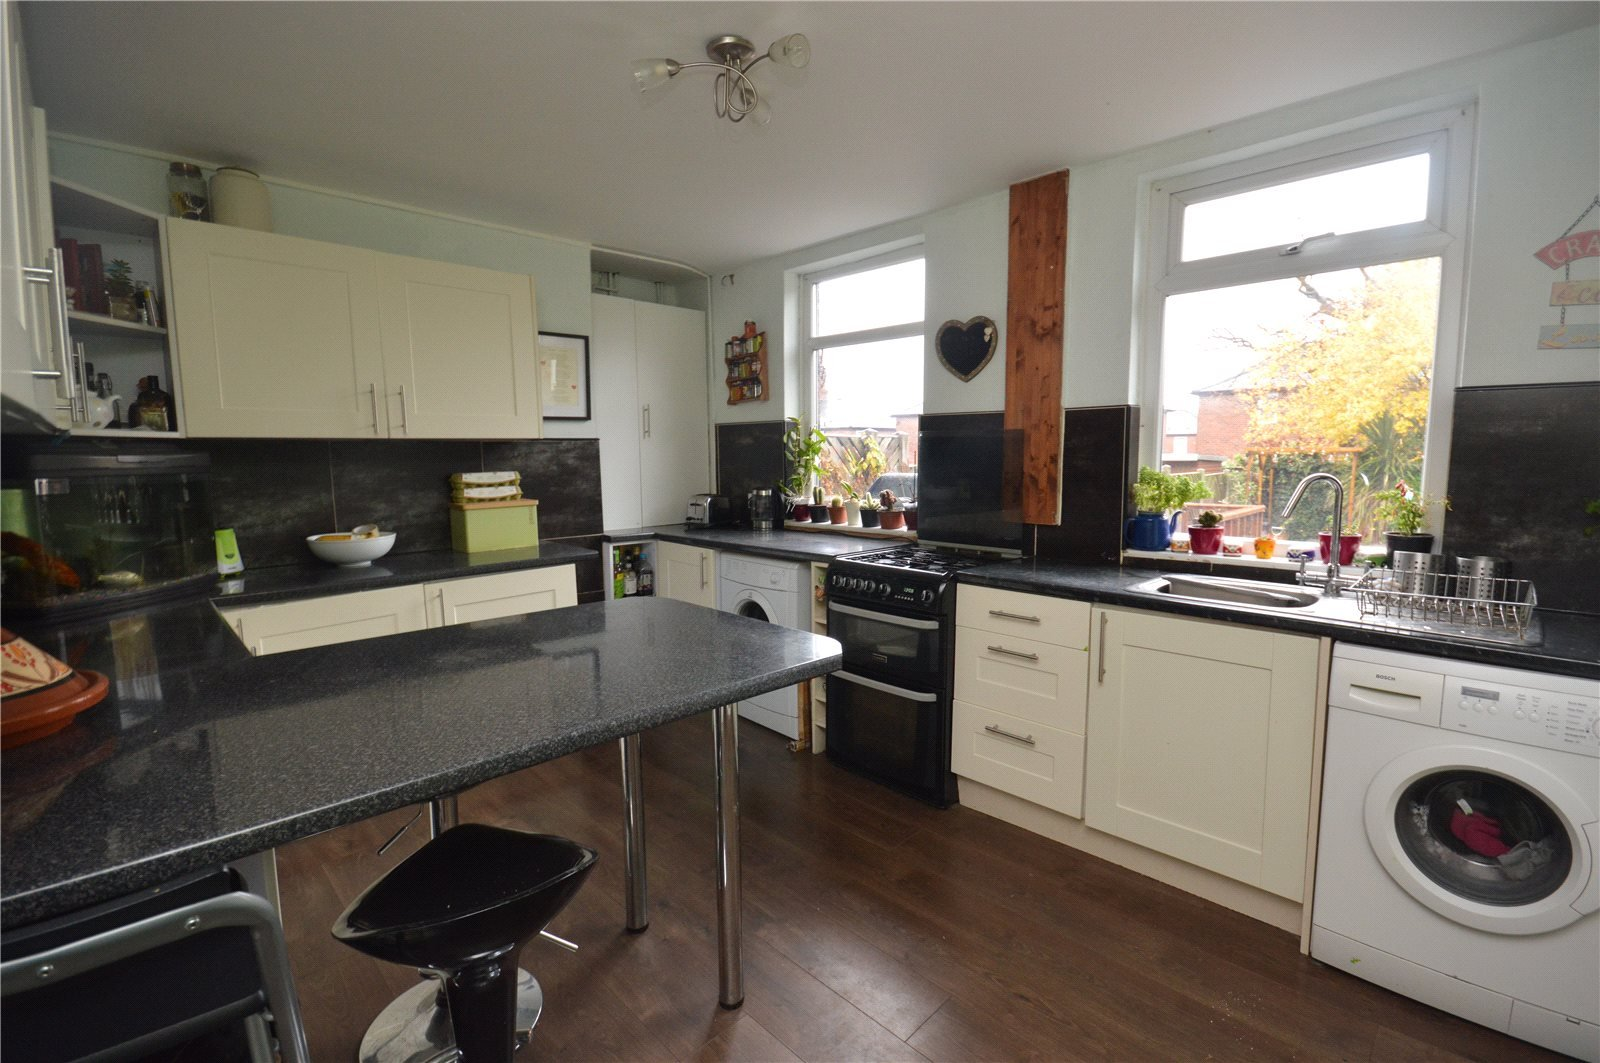 property for sale in Horsforth, interior kitchen